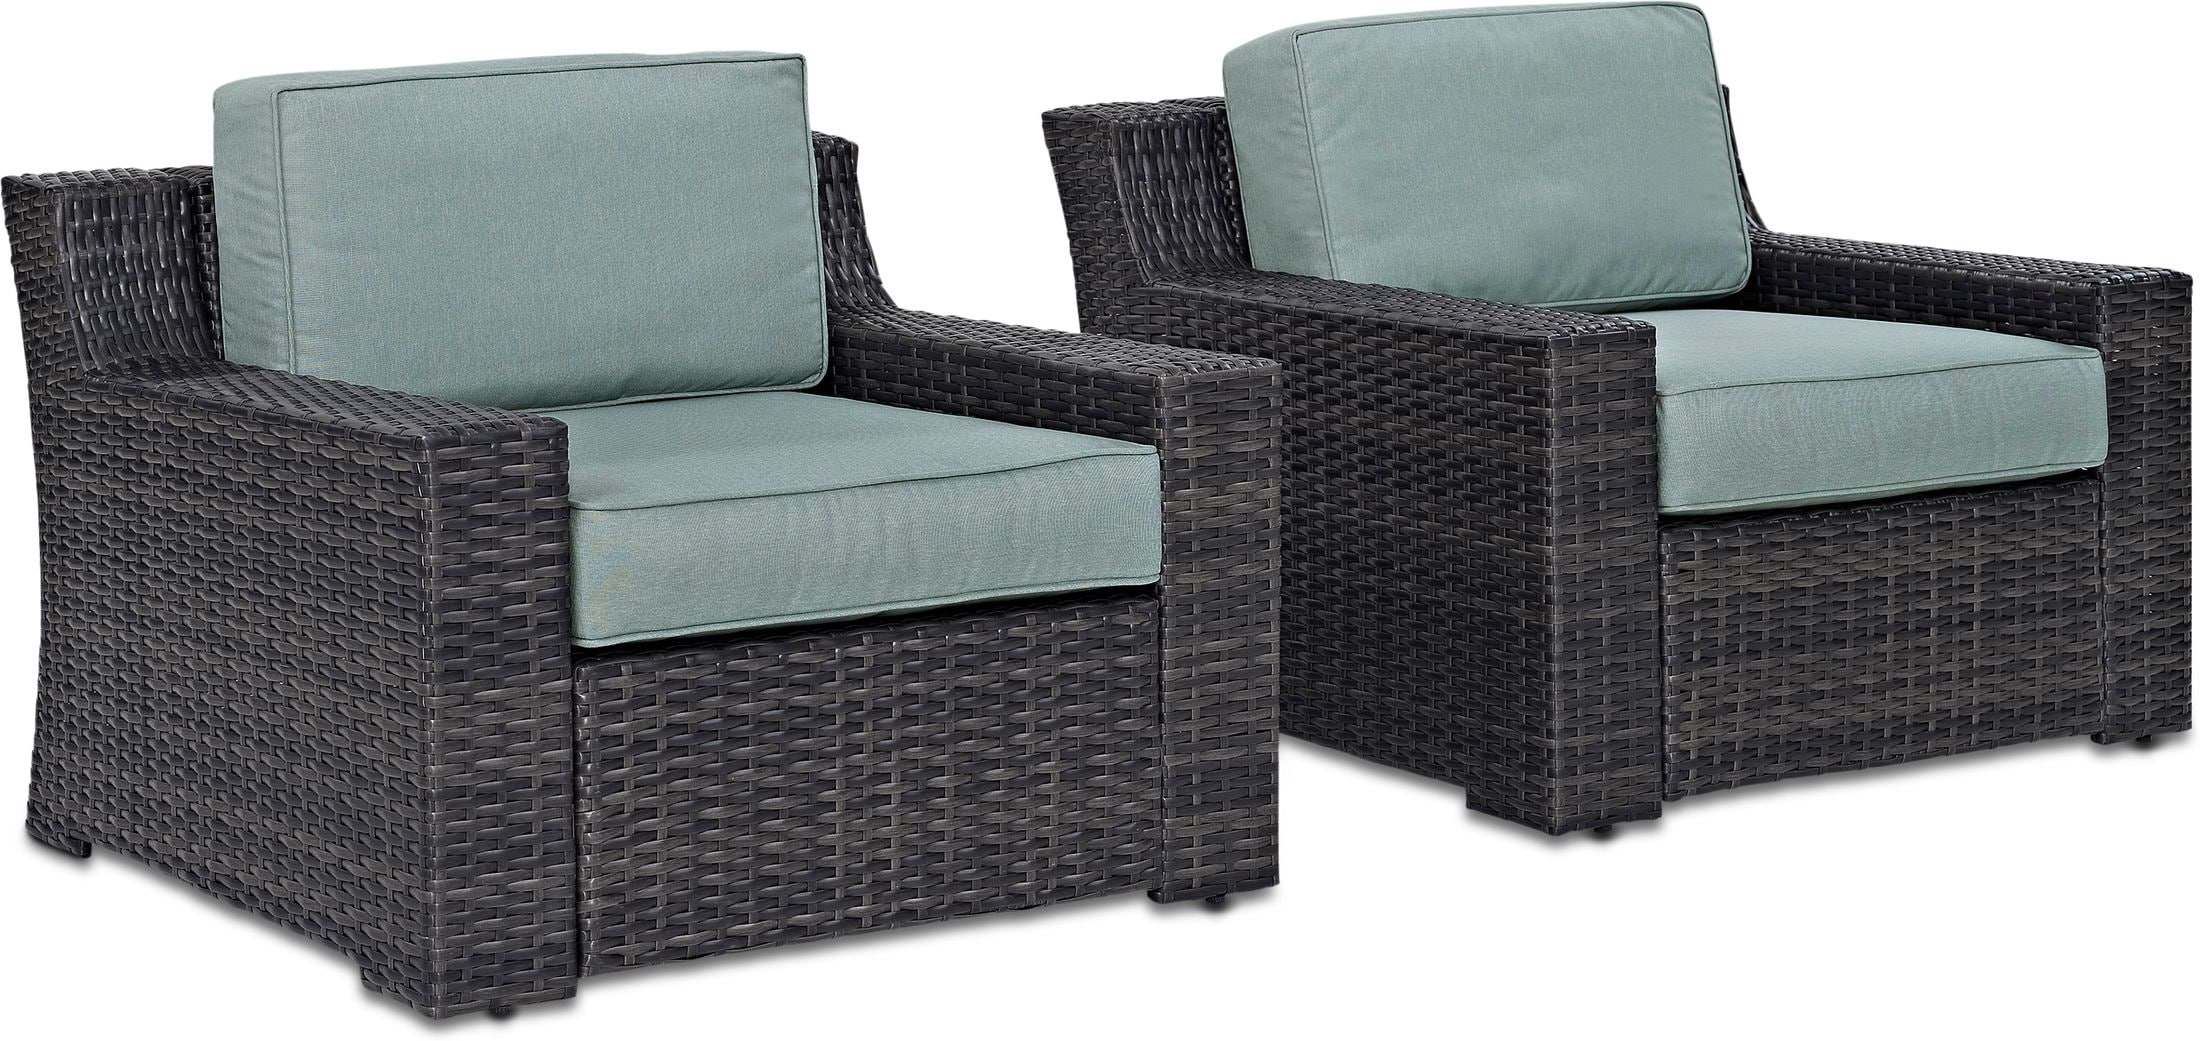 Outdoor Furniture - Tethys Set of 2 Outdoor Chairs